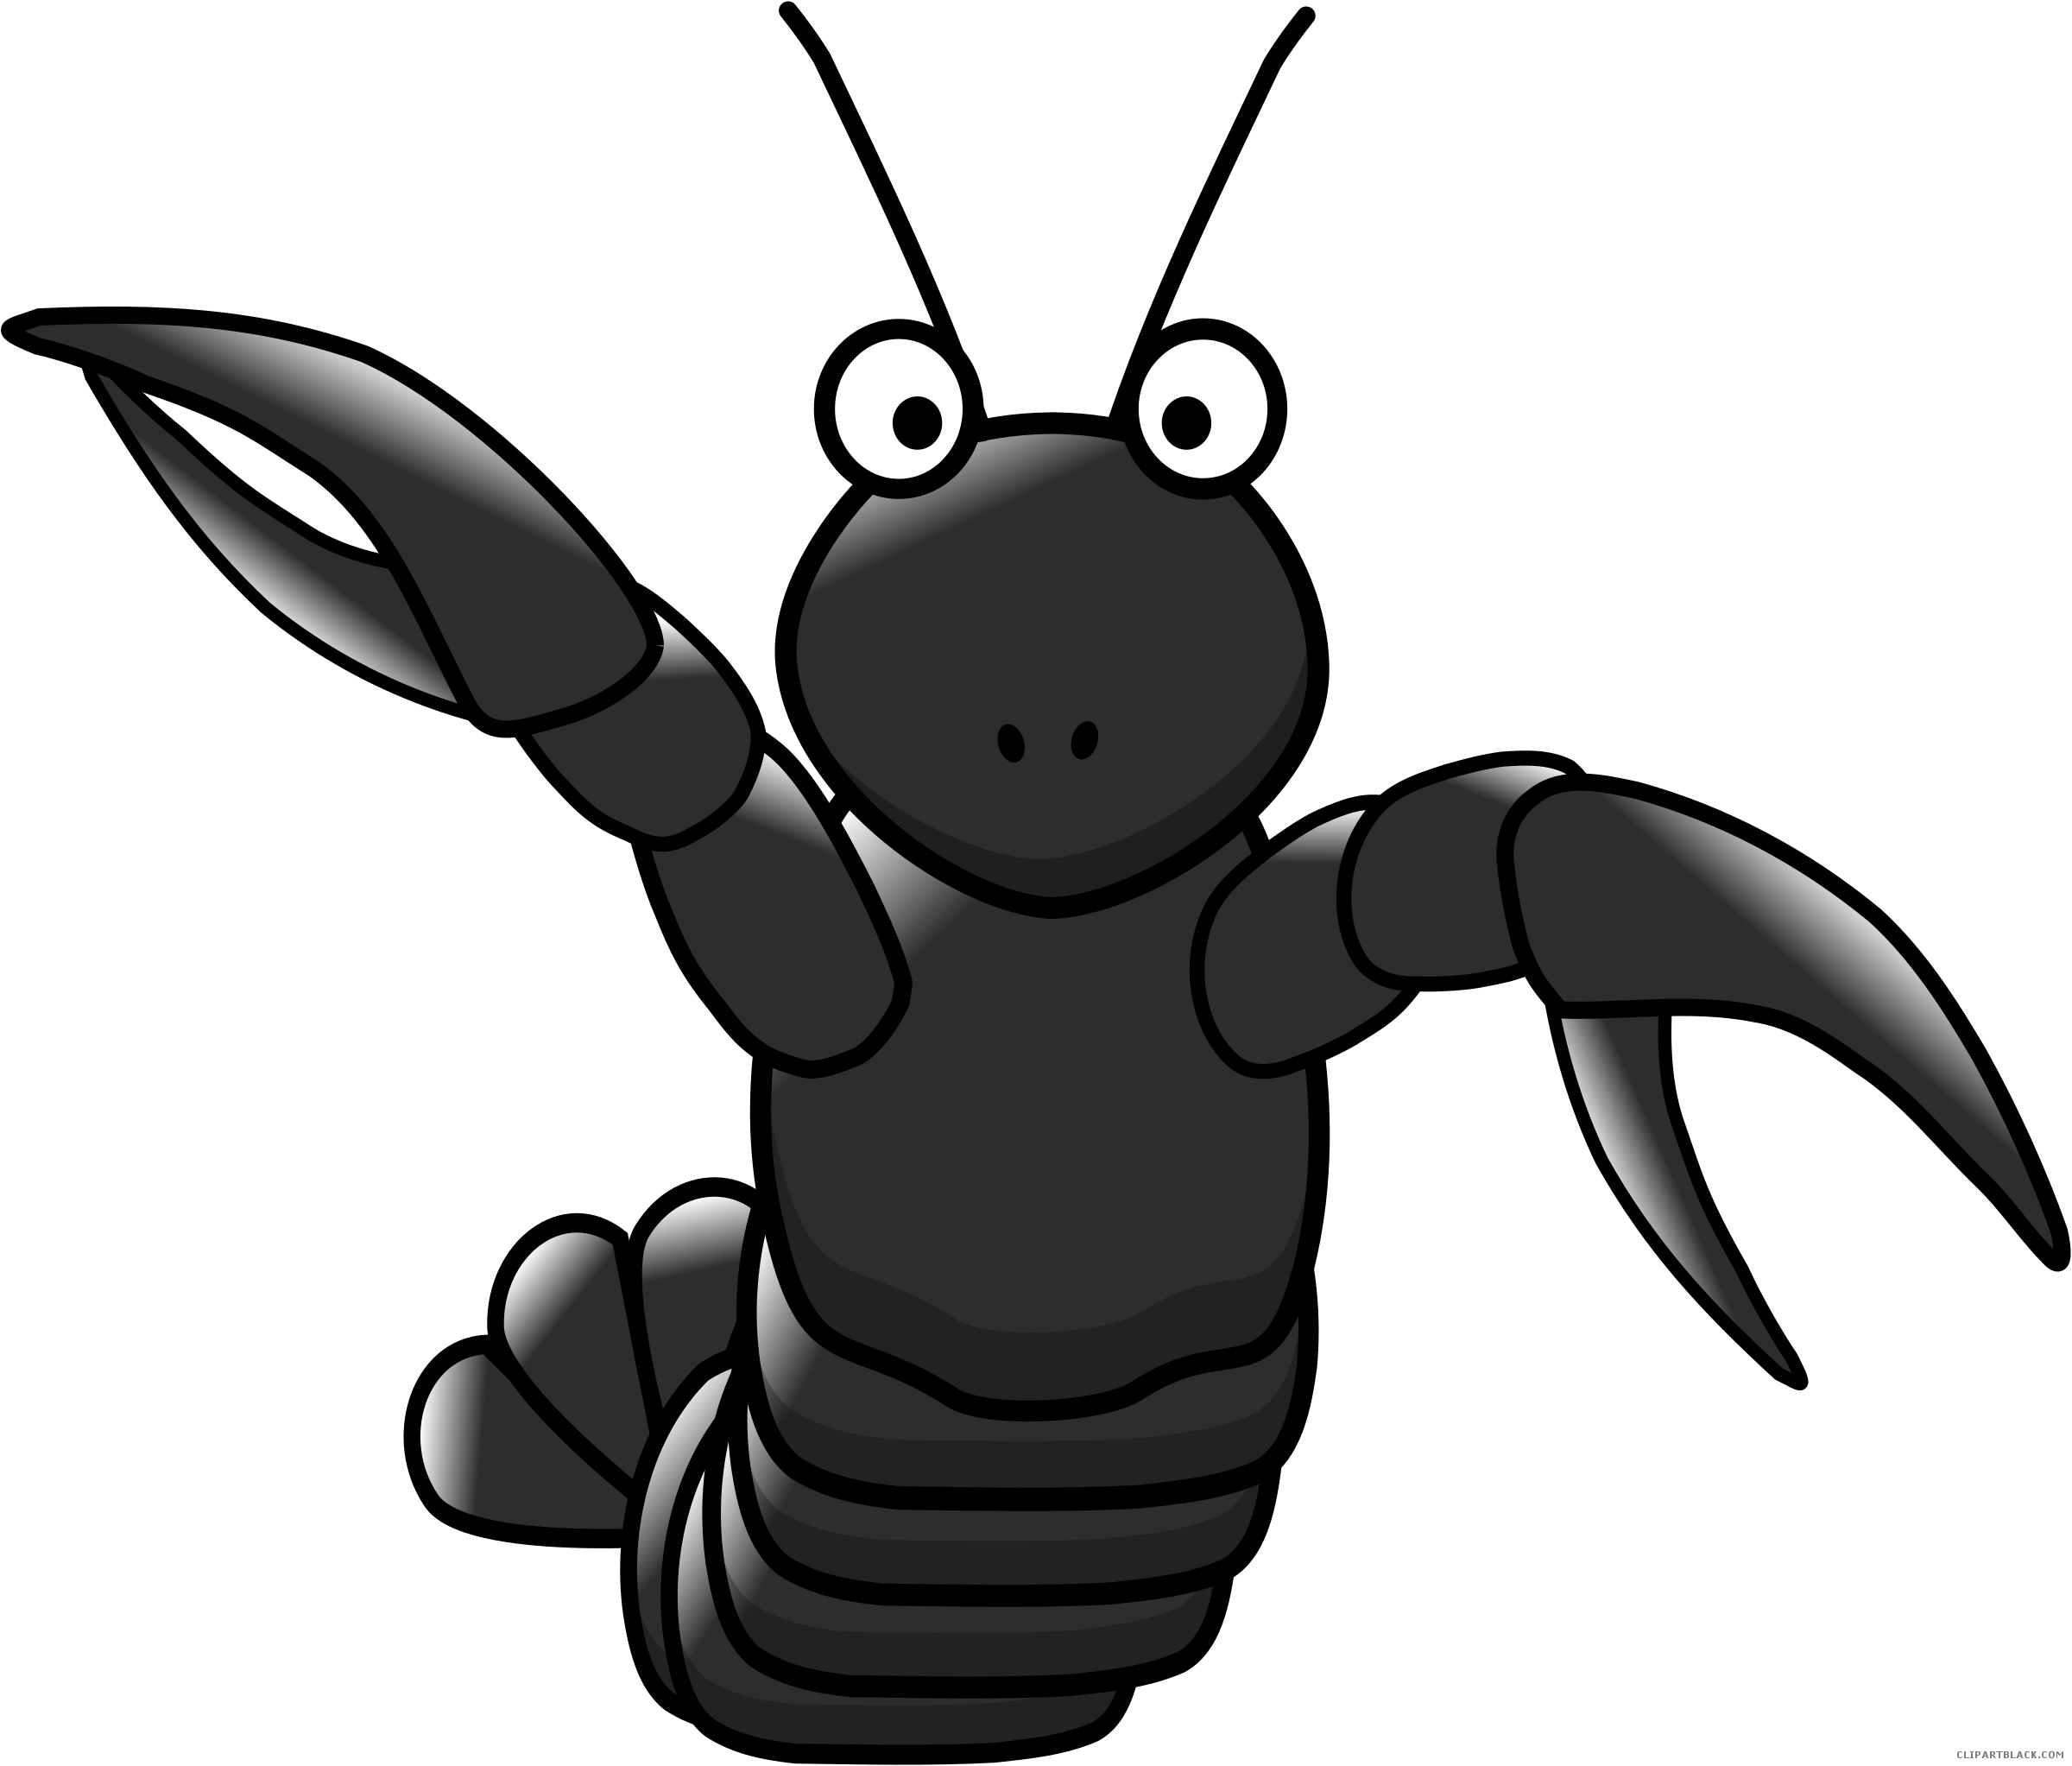 clip art royalty free stock Cartoon animal free black. Lobster clipart lobster bake.